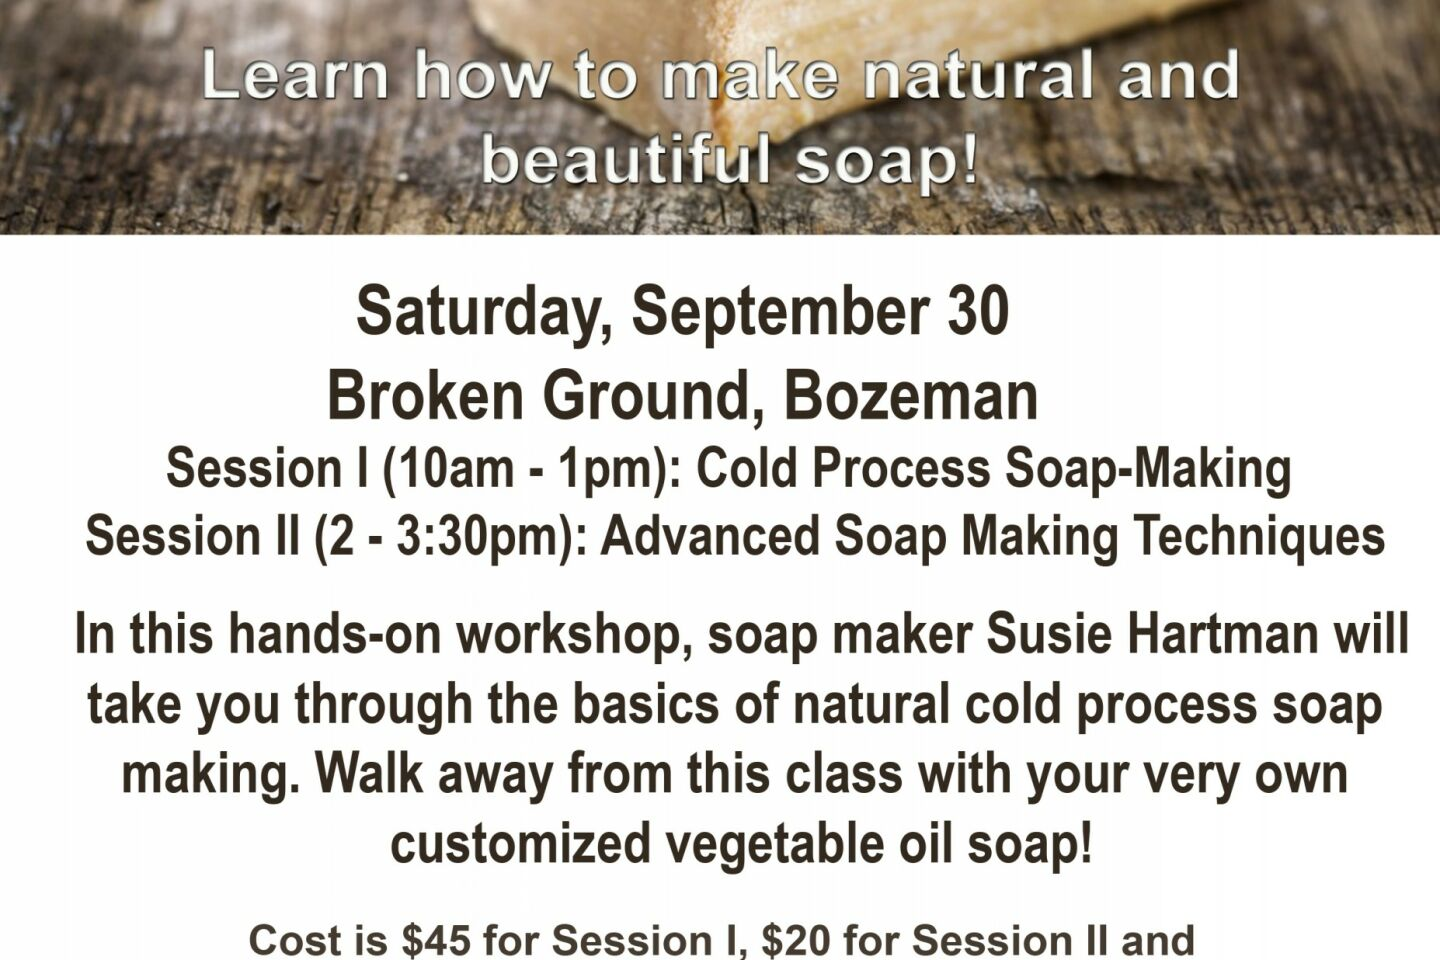 Soap Making with Susie - Broken Ground - how to make flier